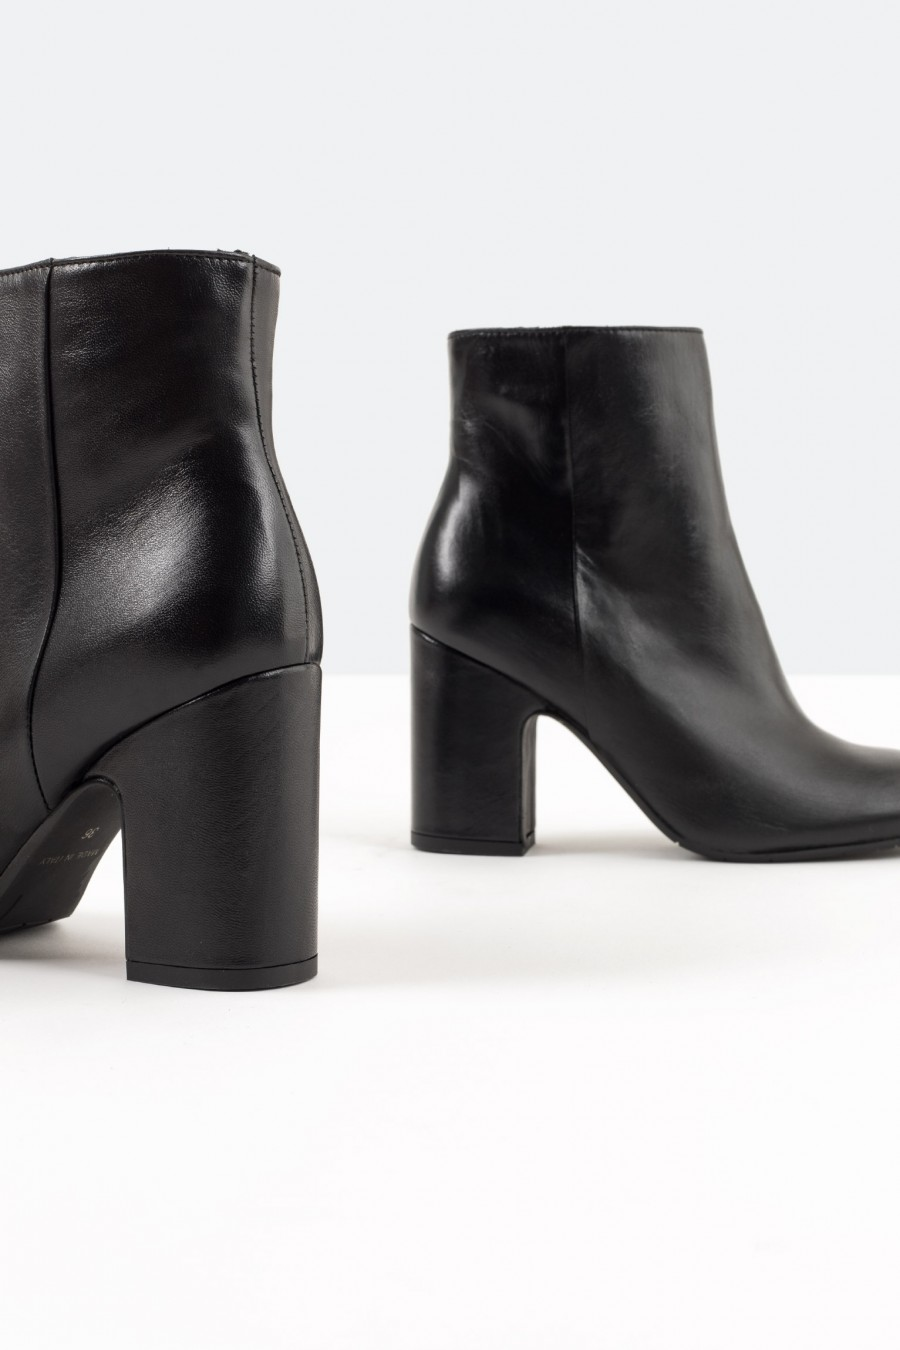 Casual black leather ankle boots